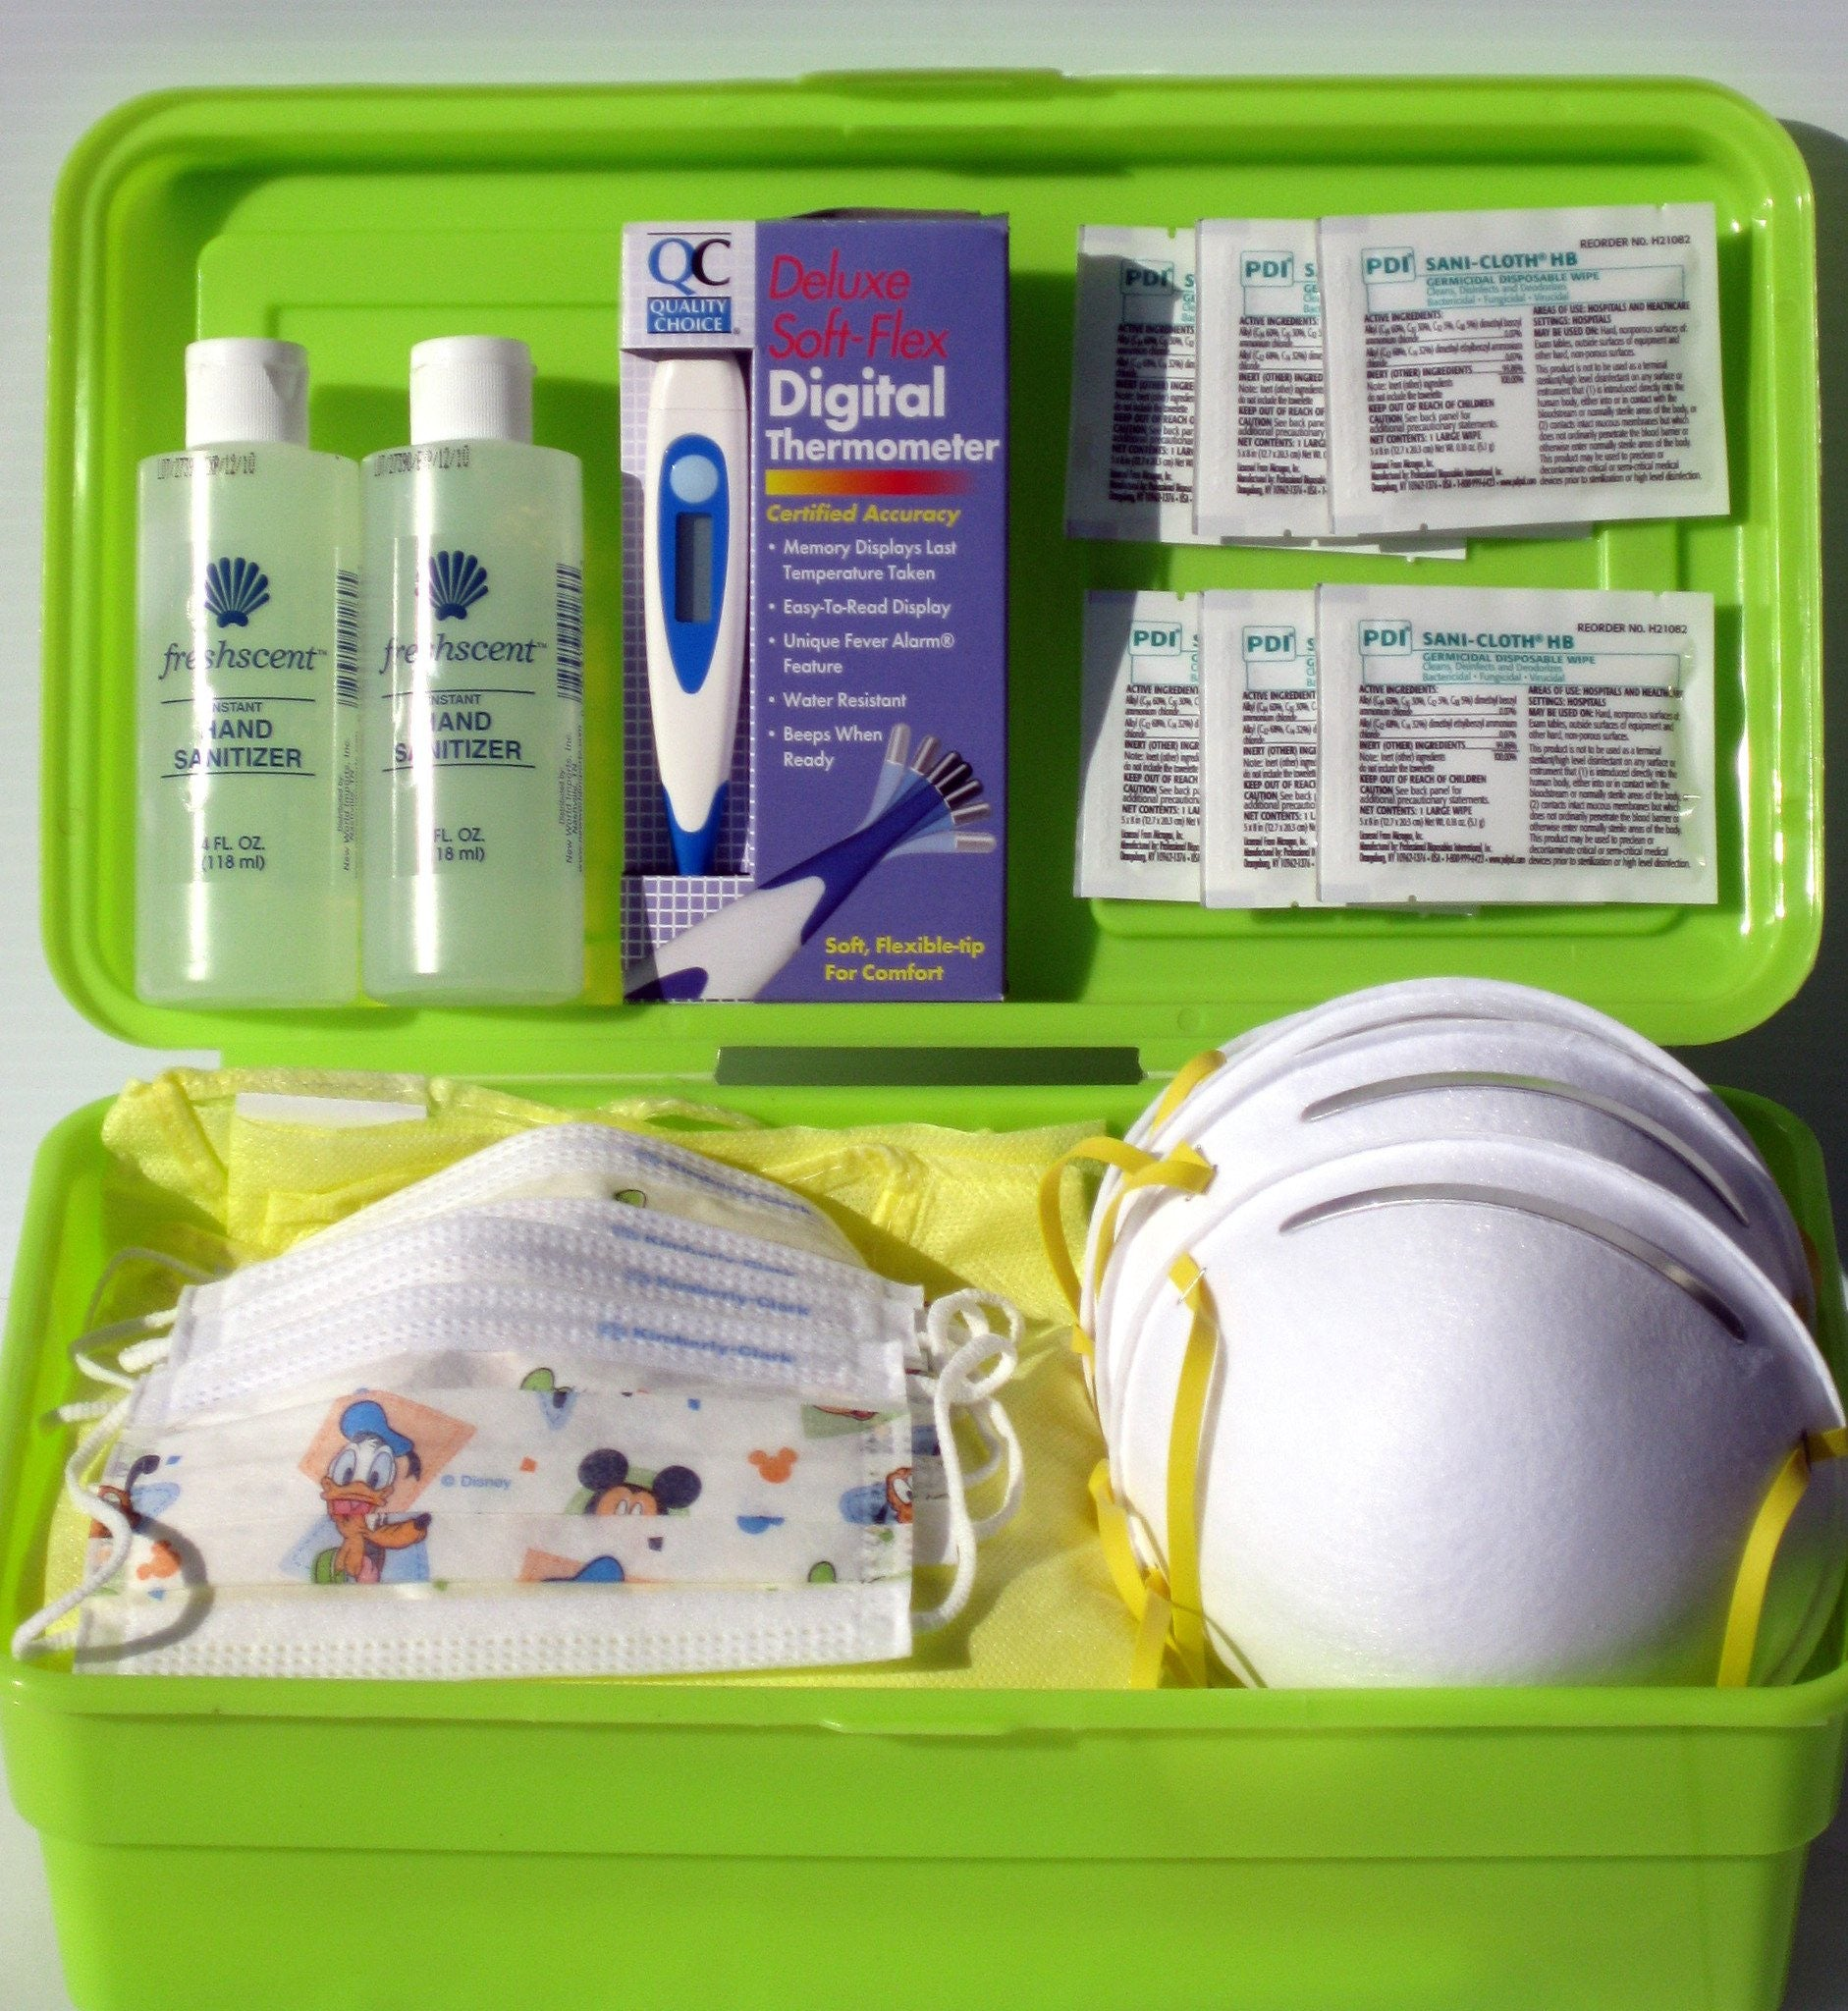 Buy Pandemic Swine Flu Family Protection Kit with Childrens Masks by Mountainside Medical Equipment wholesale bulk | Cold and Flu